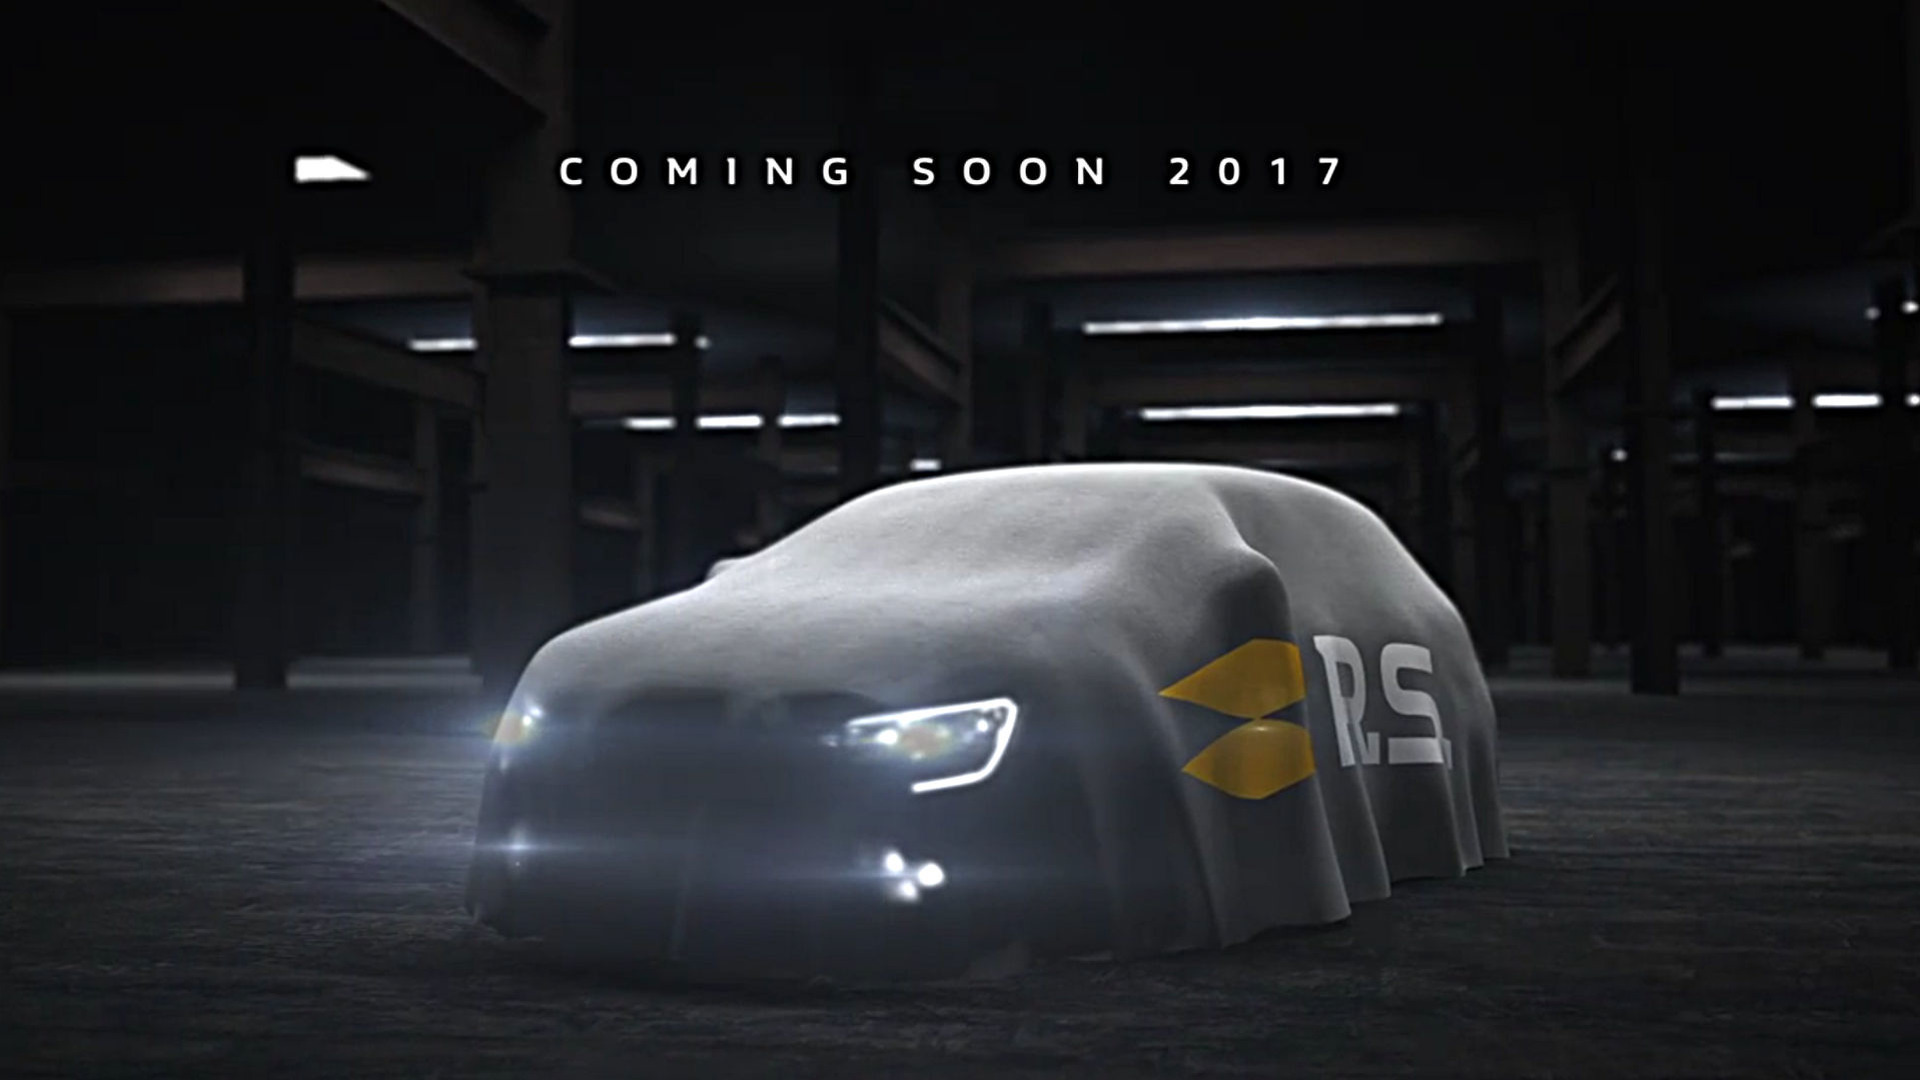 1920x1080 - Renault RS Wallpapers 34